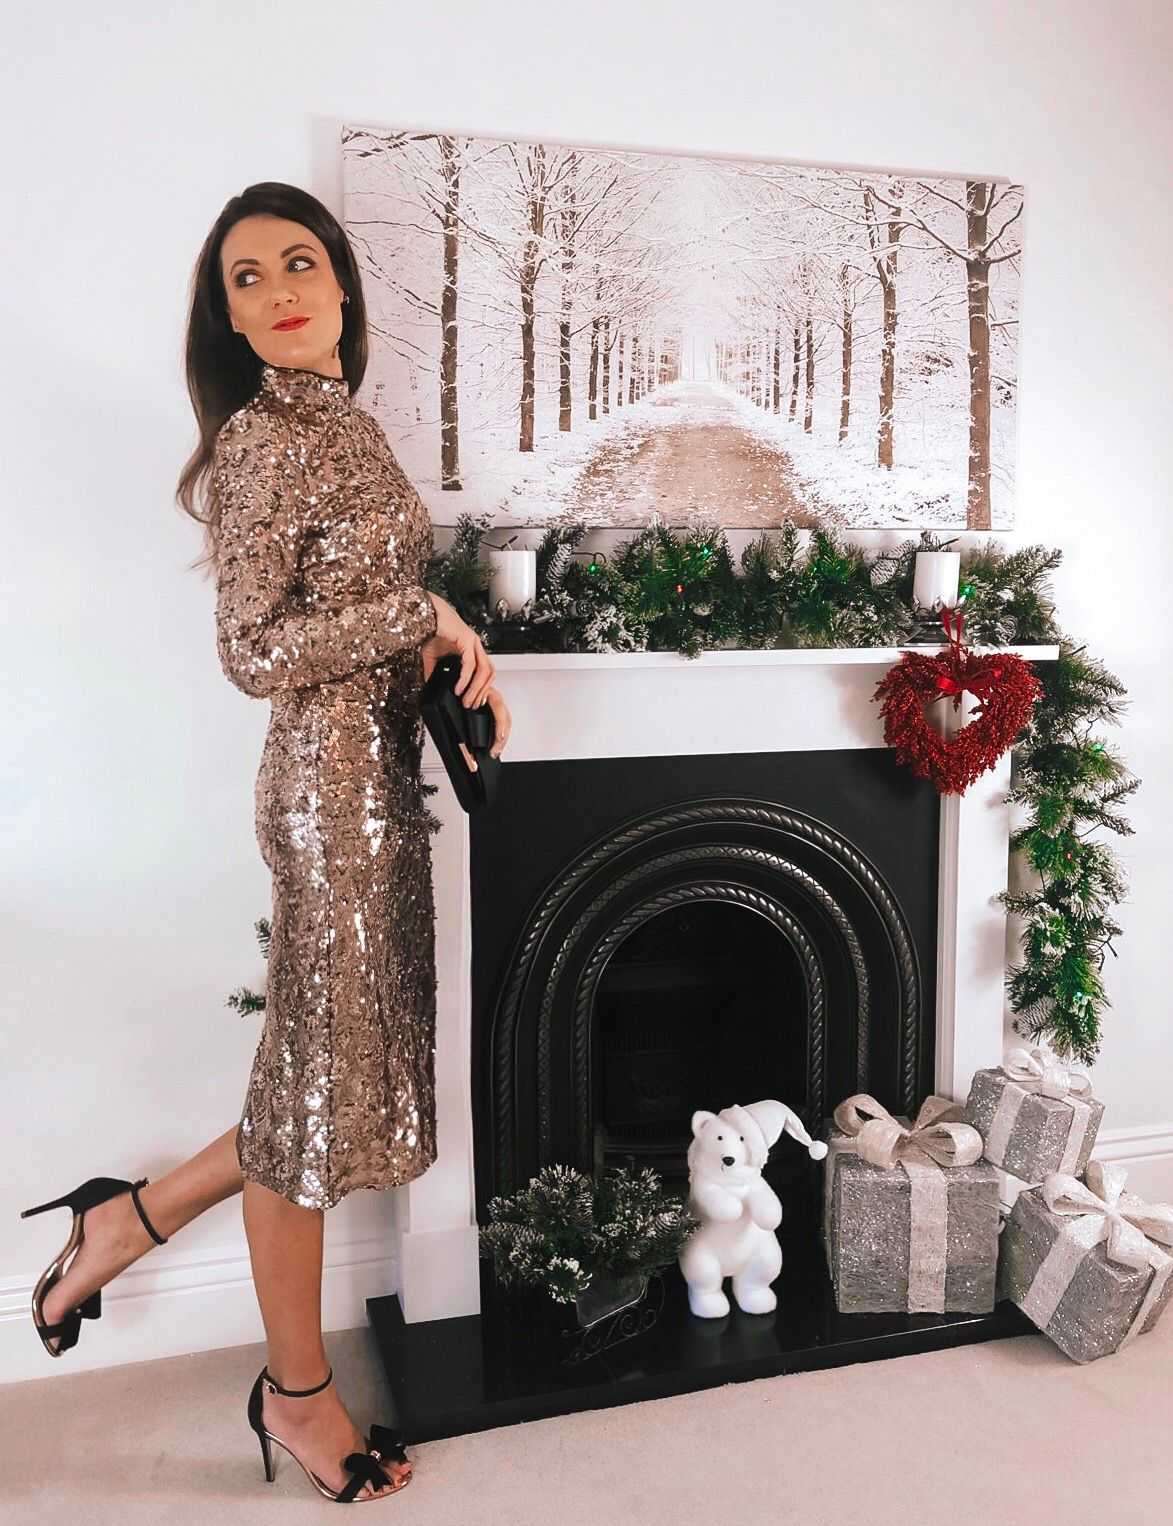 ASOS TFNC high neck sequin midi dress in gold | Ted Baker Black Bowdalo Strappy Heeled Sandals | Ted Baker giant knot cross body purse bag | ASOS earrings